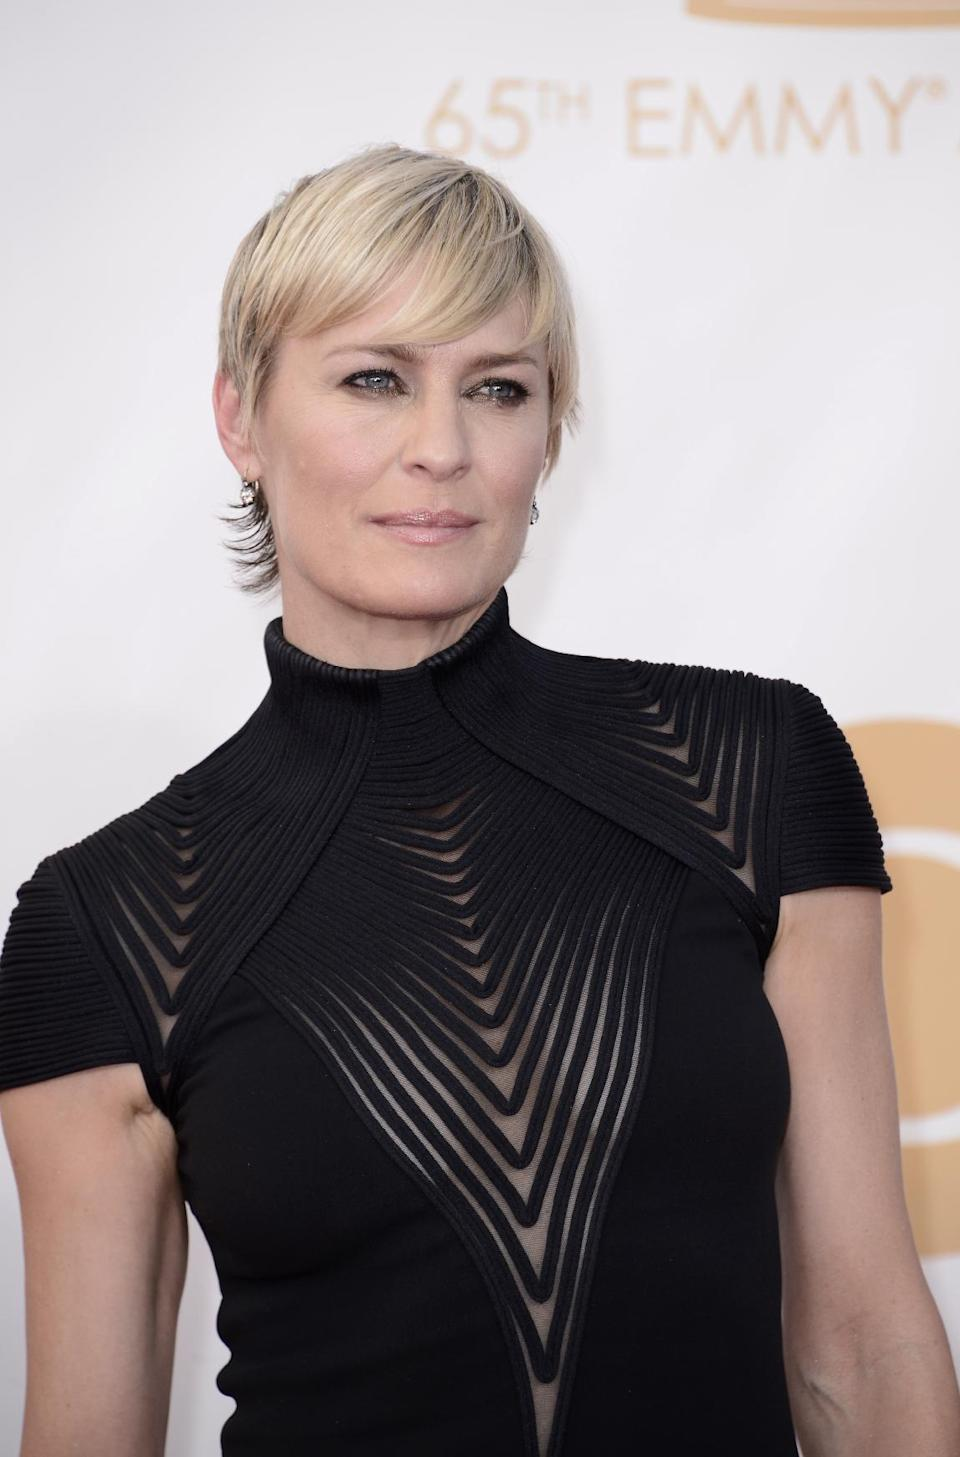 Robin Wright, wearing Ralph Lauren, arrives at the 65th Primetime Emmy Awards at Nokia Theatre on Sunday Sept. 22, 2013, in Los Angeles. (Photo by Dan Steinberg/Invision/AP)